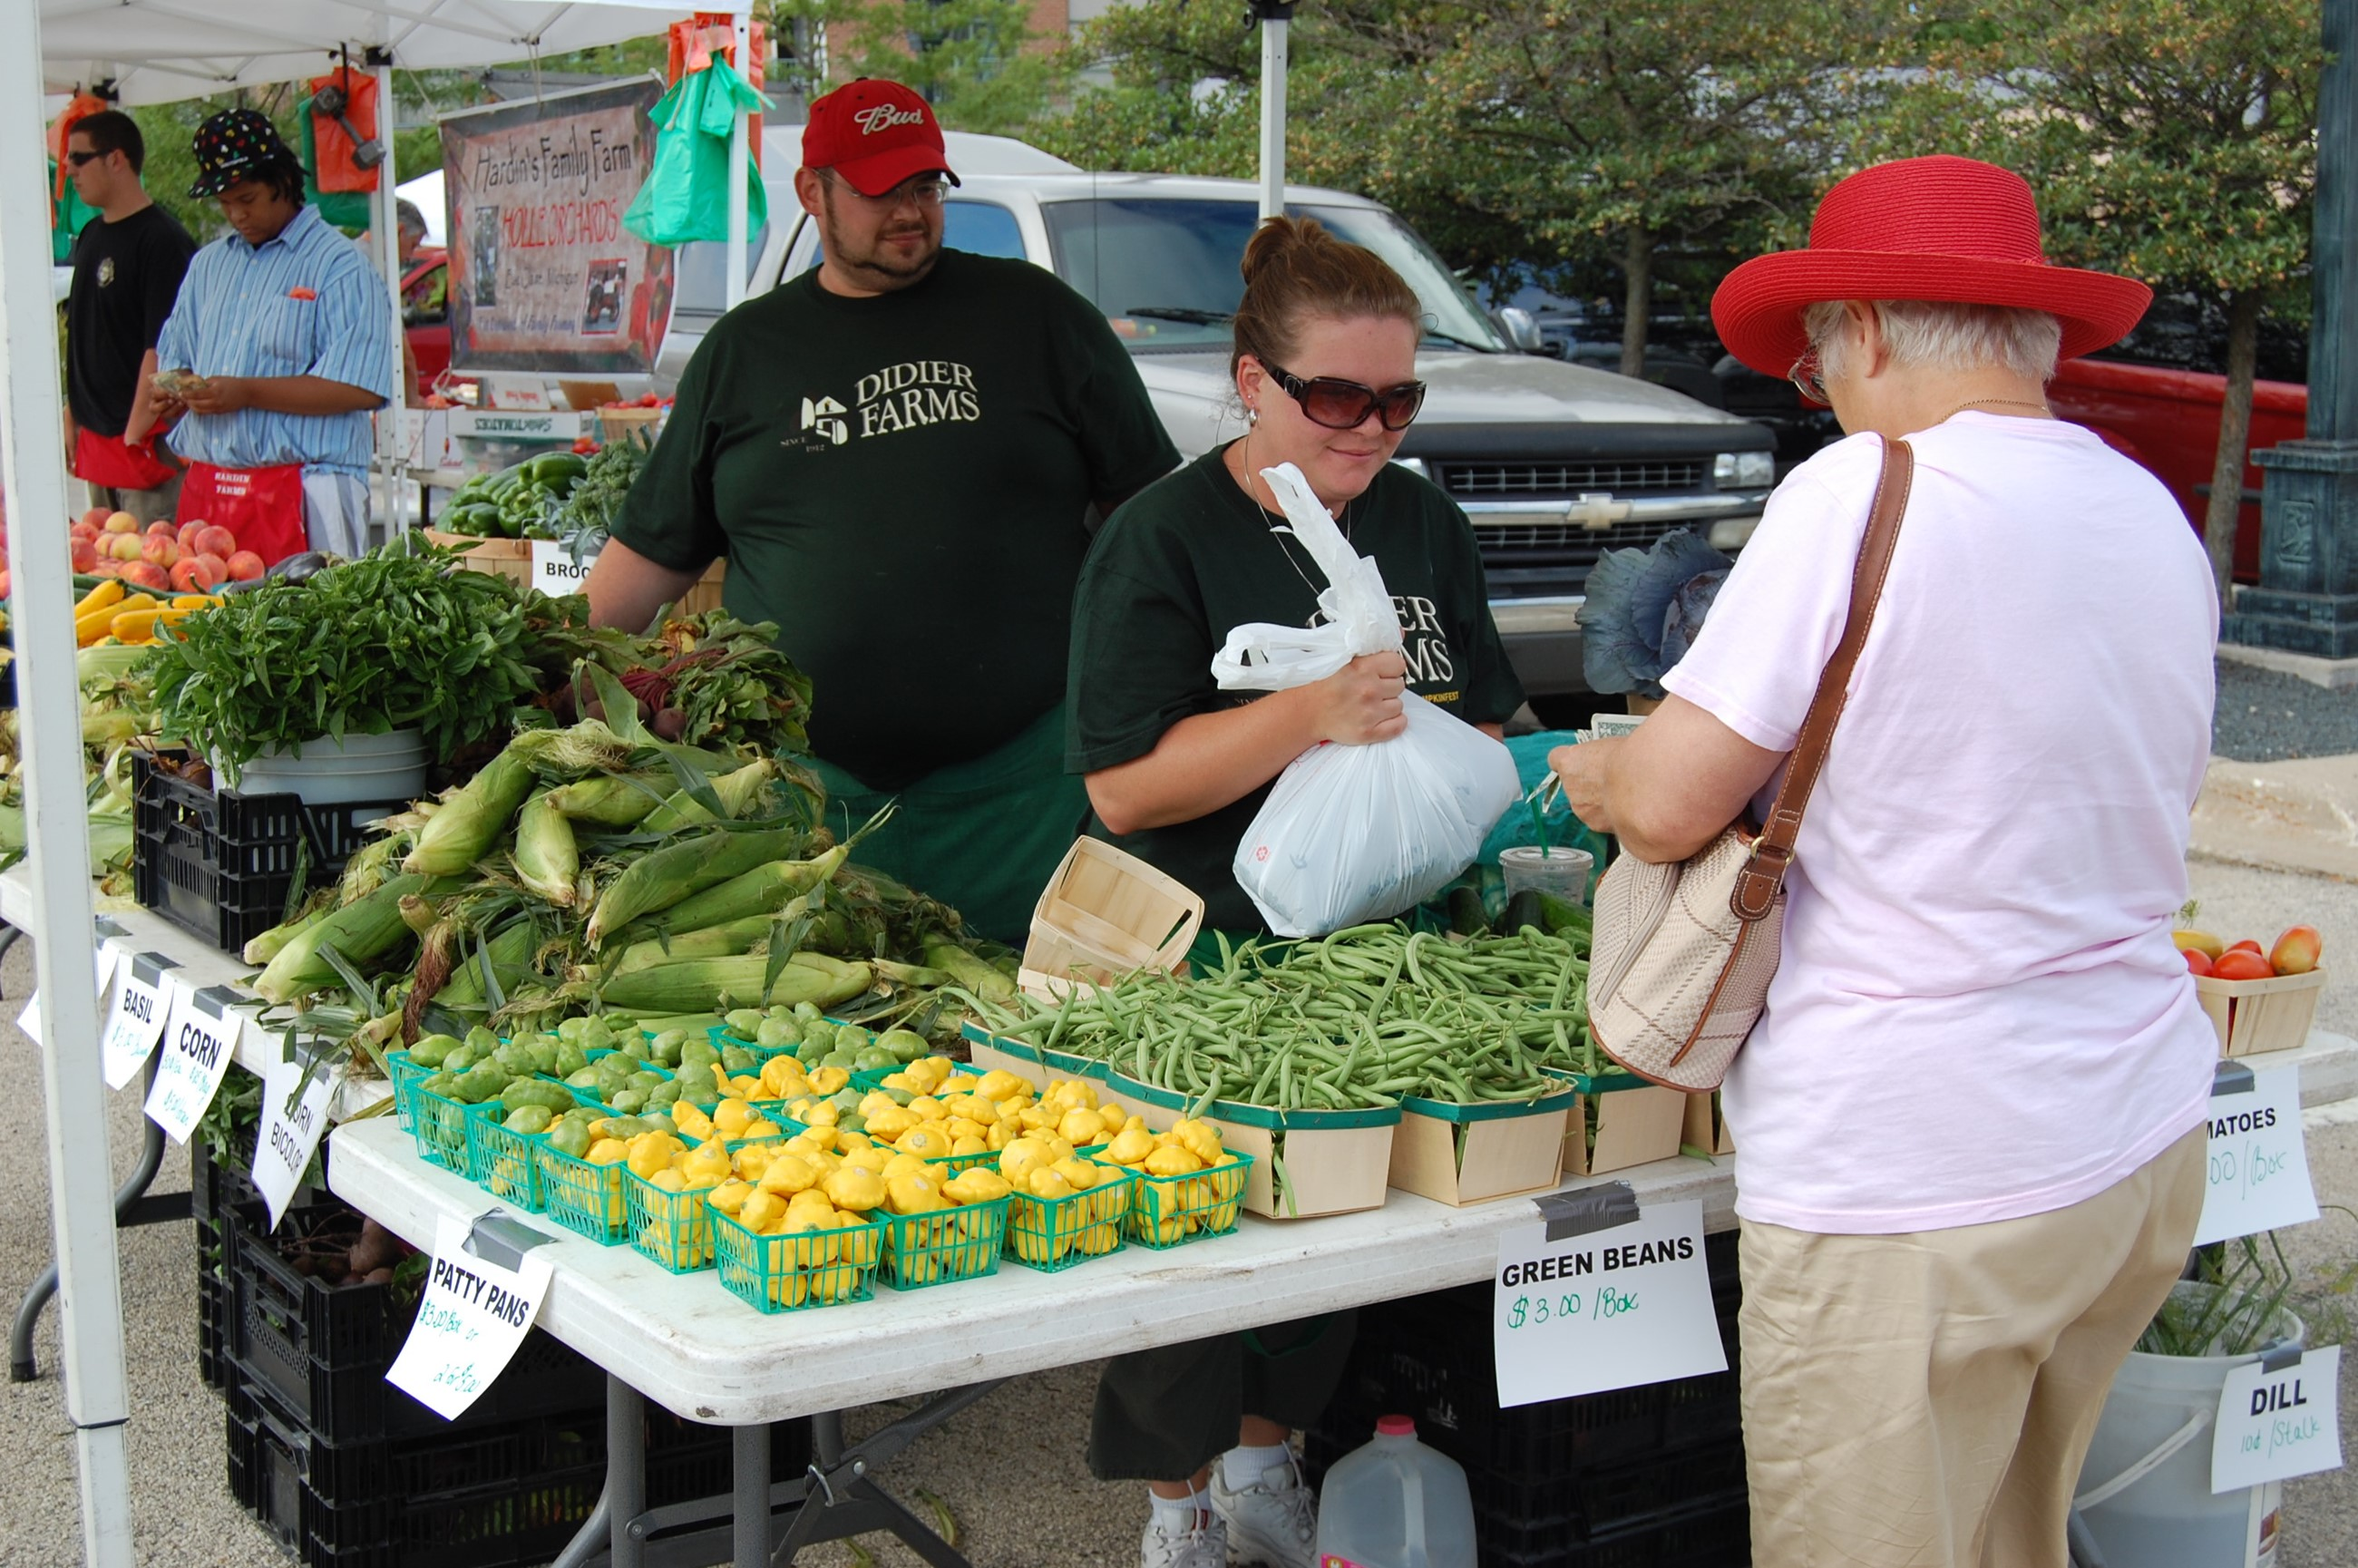 Vendors and customers with yellow and green produce